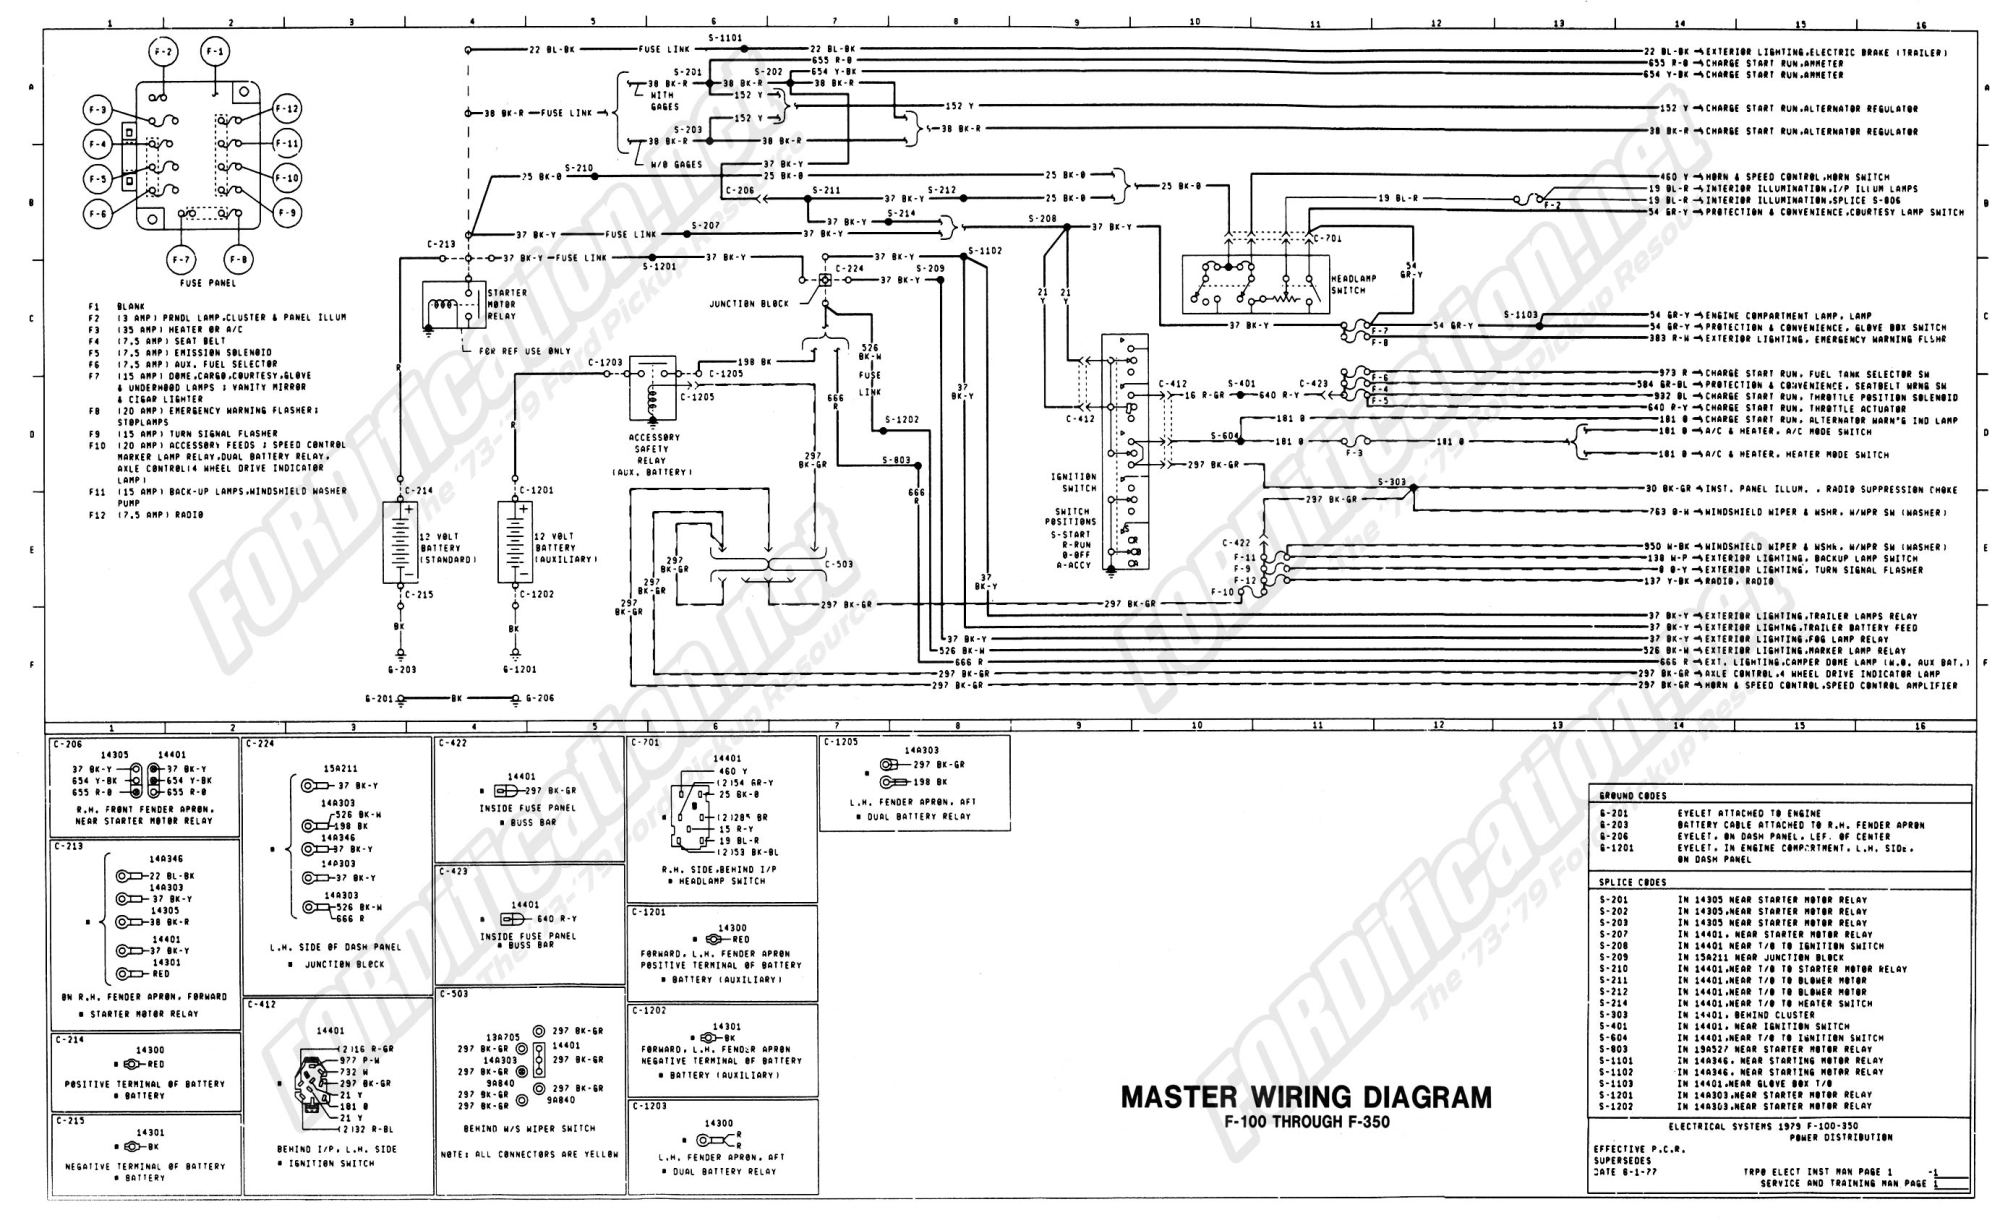 hight resolution of 1973 1979 ford truck wiring diagrams schematics fordification net jeep cj7 wiring diagram 79 ford truck ignition wiring diagram